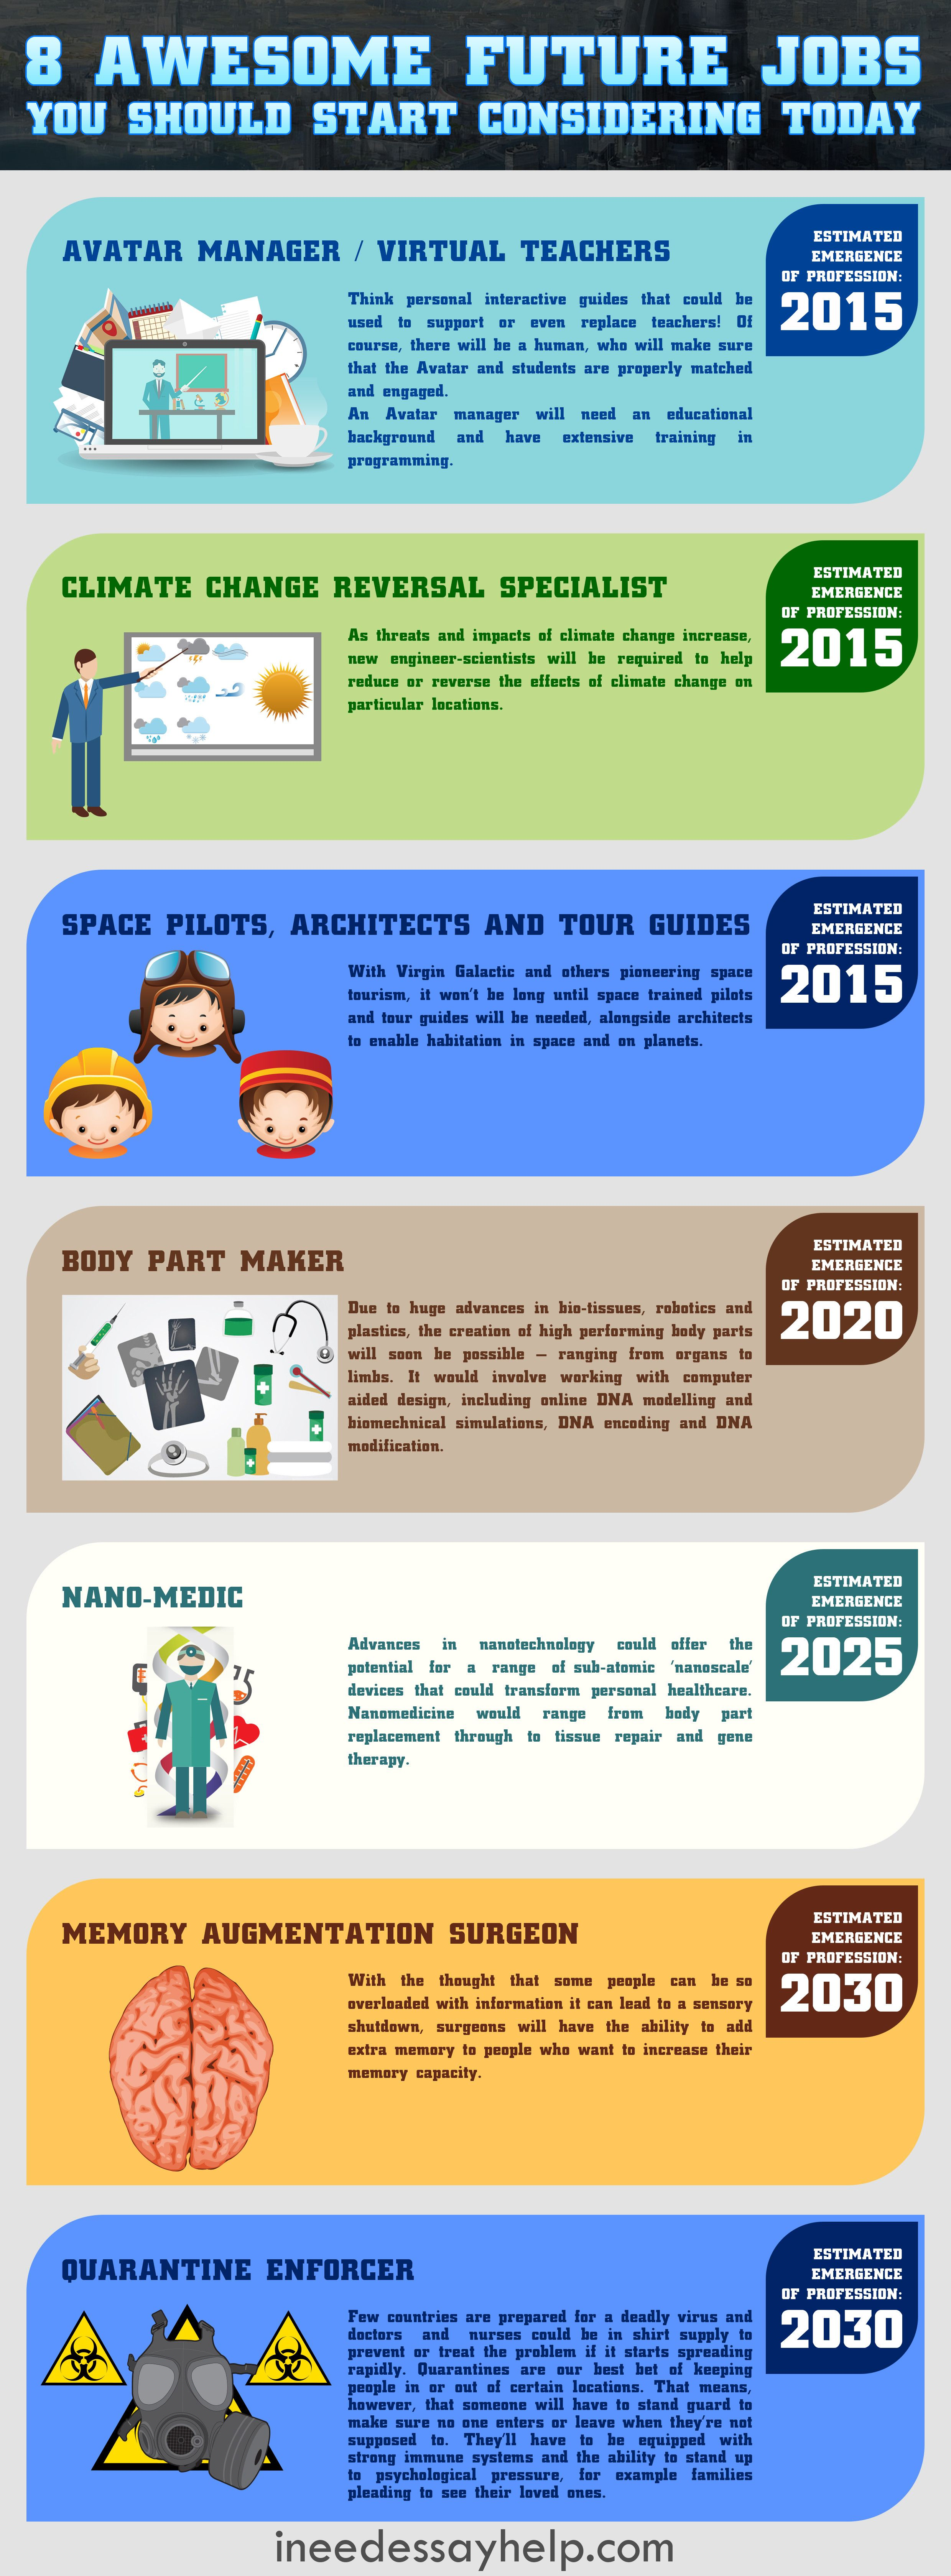 8 Awesome Future Jobs You Should Start Considering Today Infographic Future Jobs Job Search Tips Career Exploration